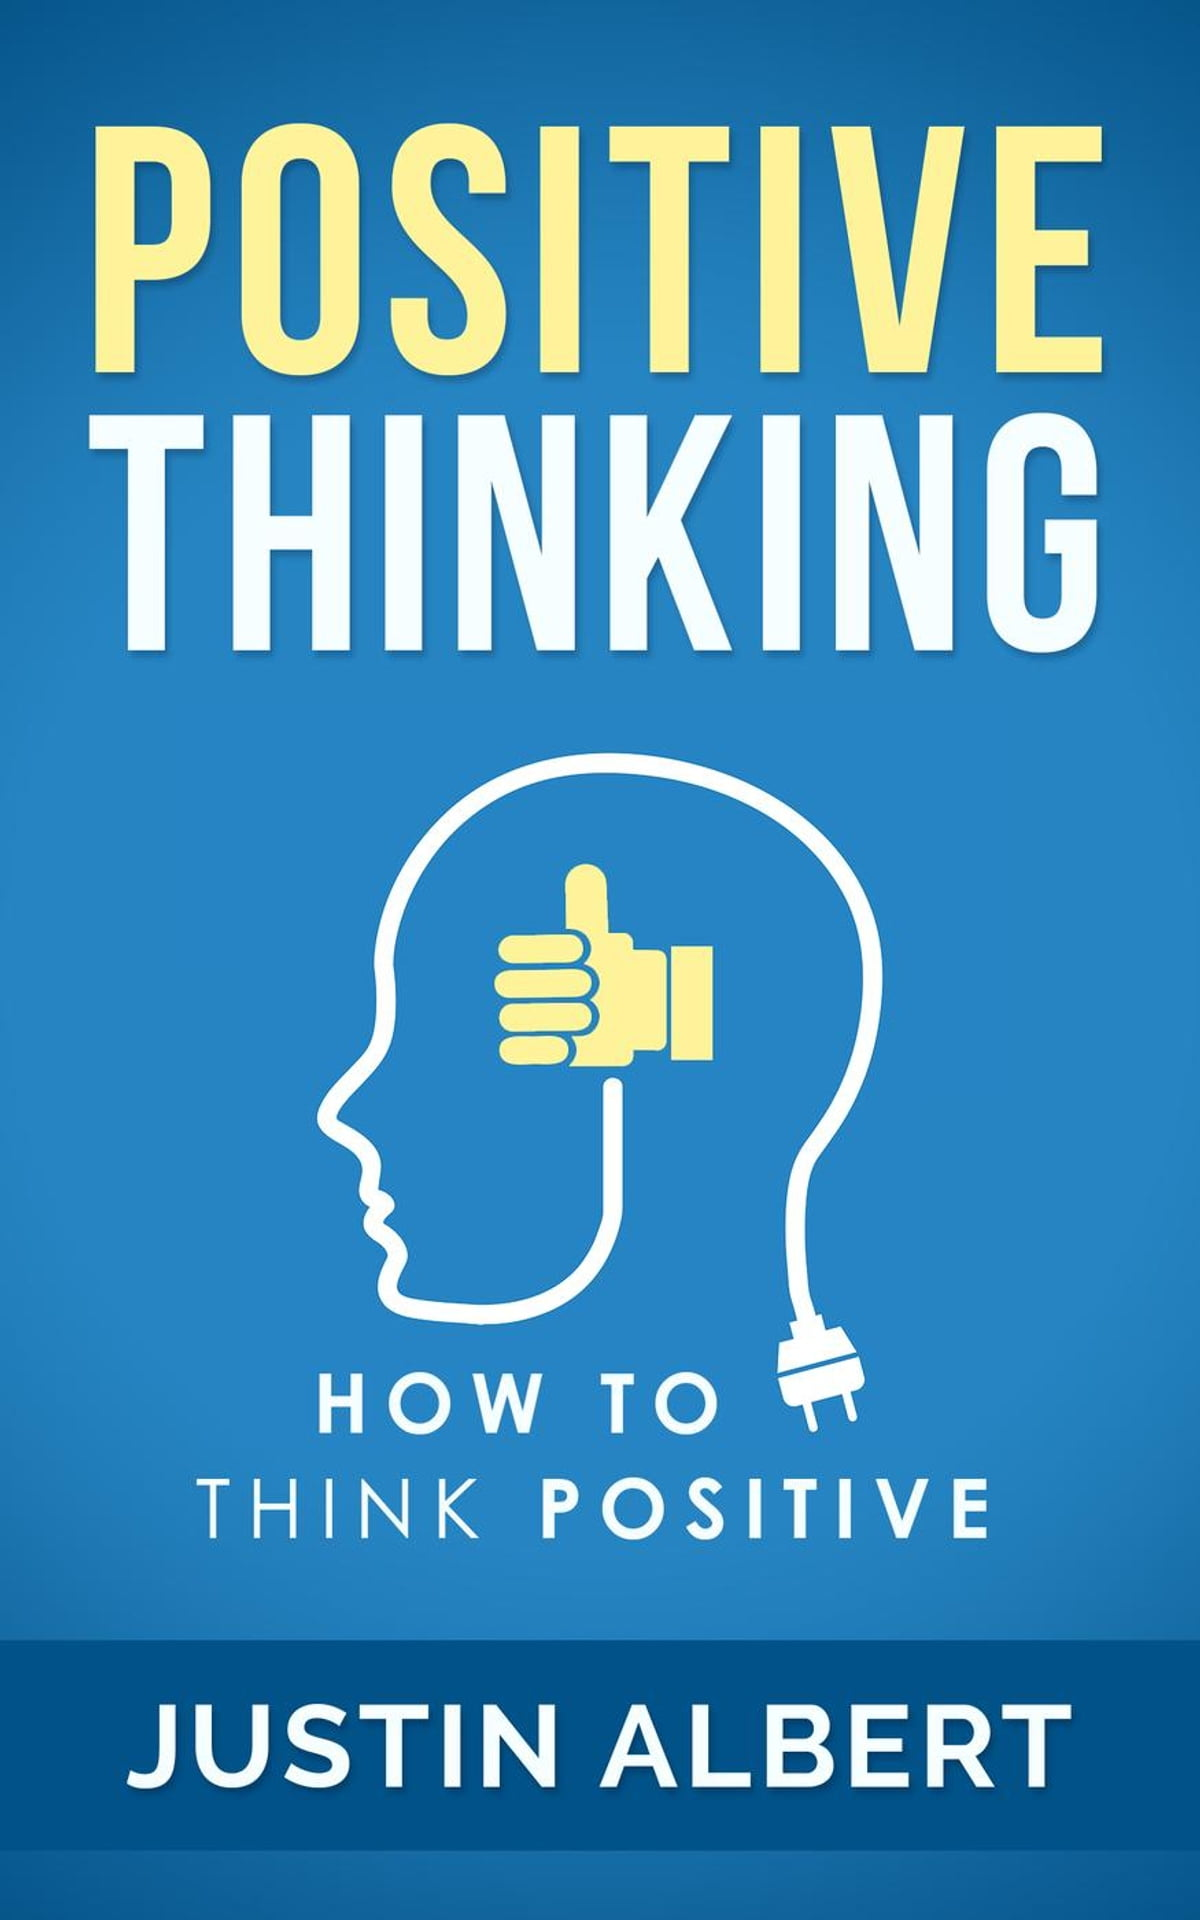 Positive Thinking: How To Think Positive - The Power of ...